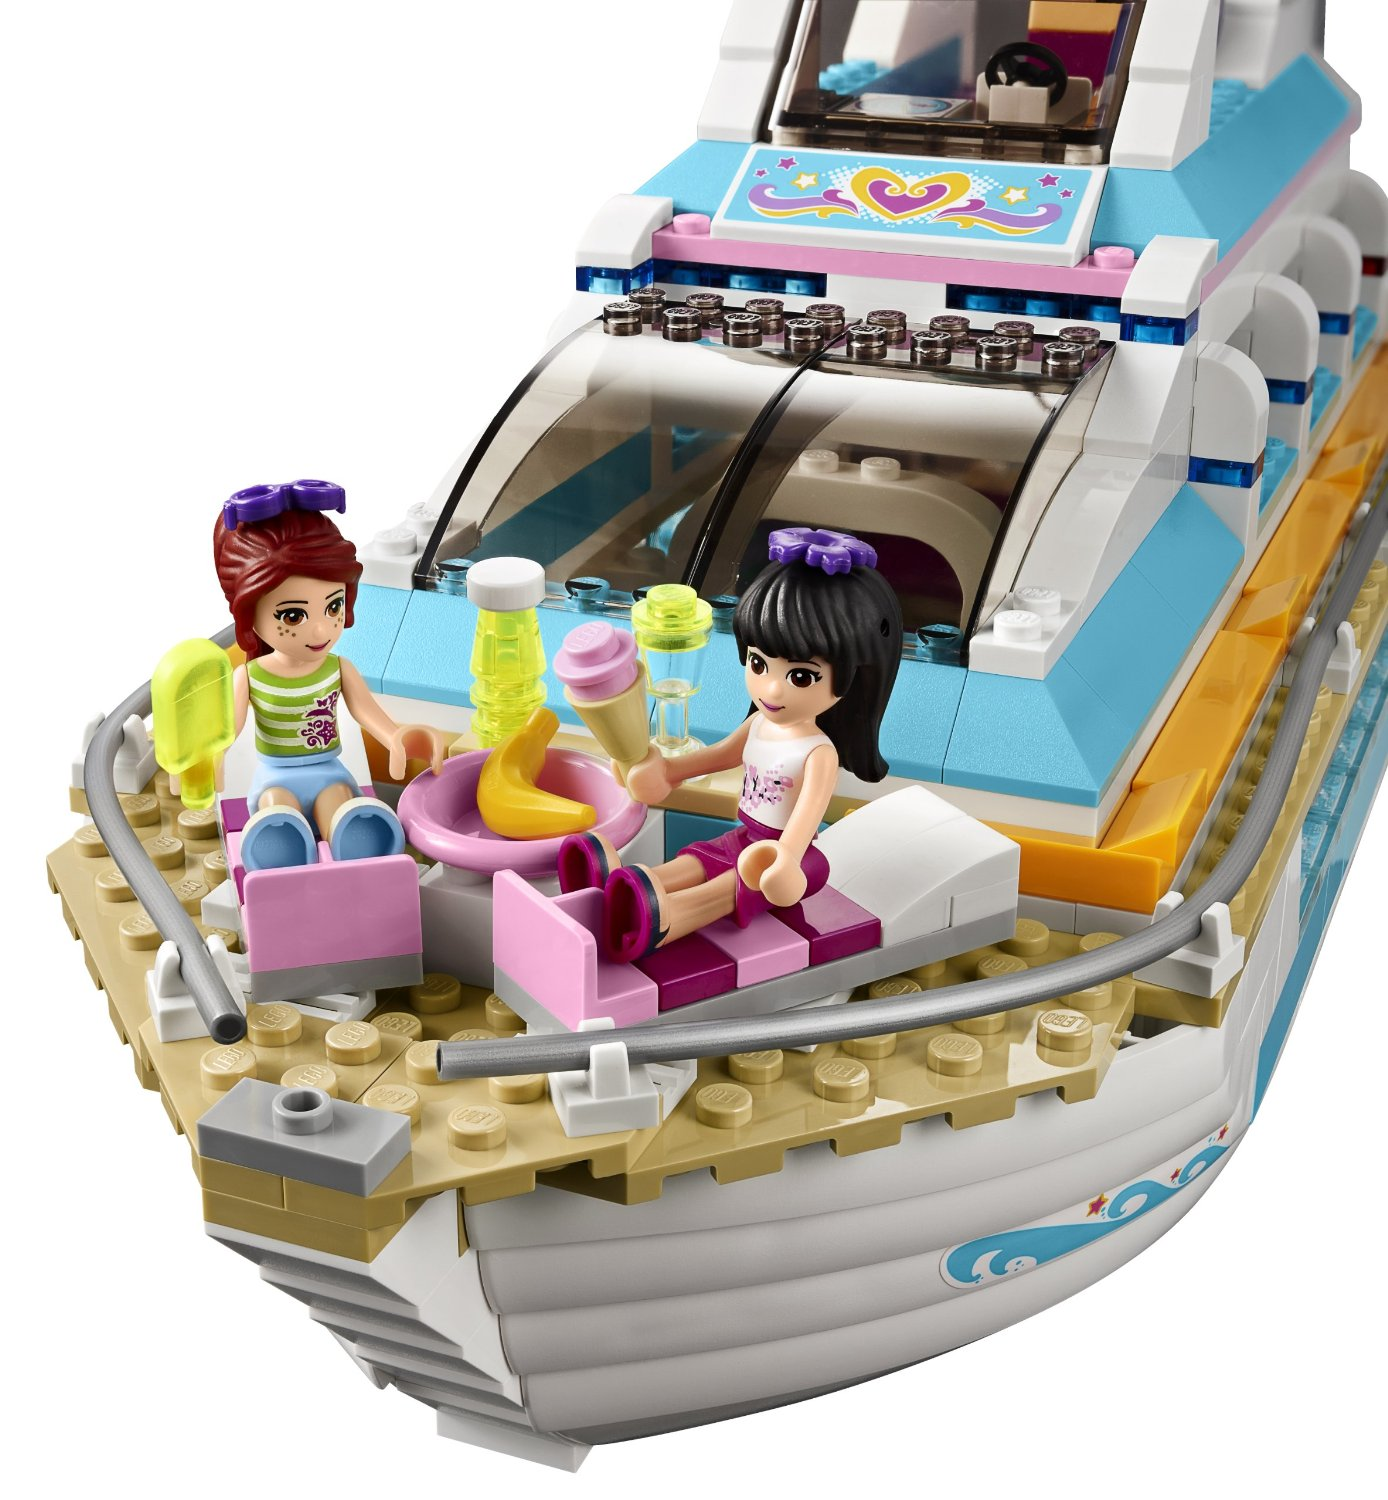 Shopping For Lego Friends Dolphin Cruiser 41015 Building Kit?